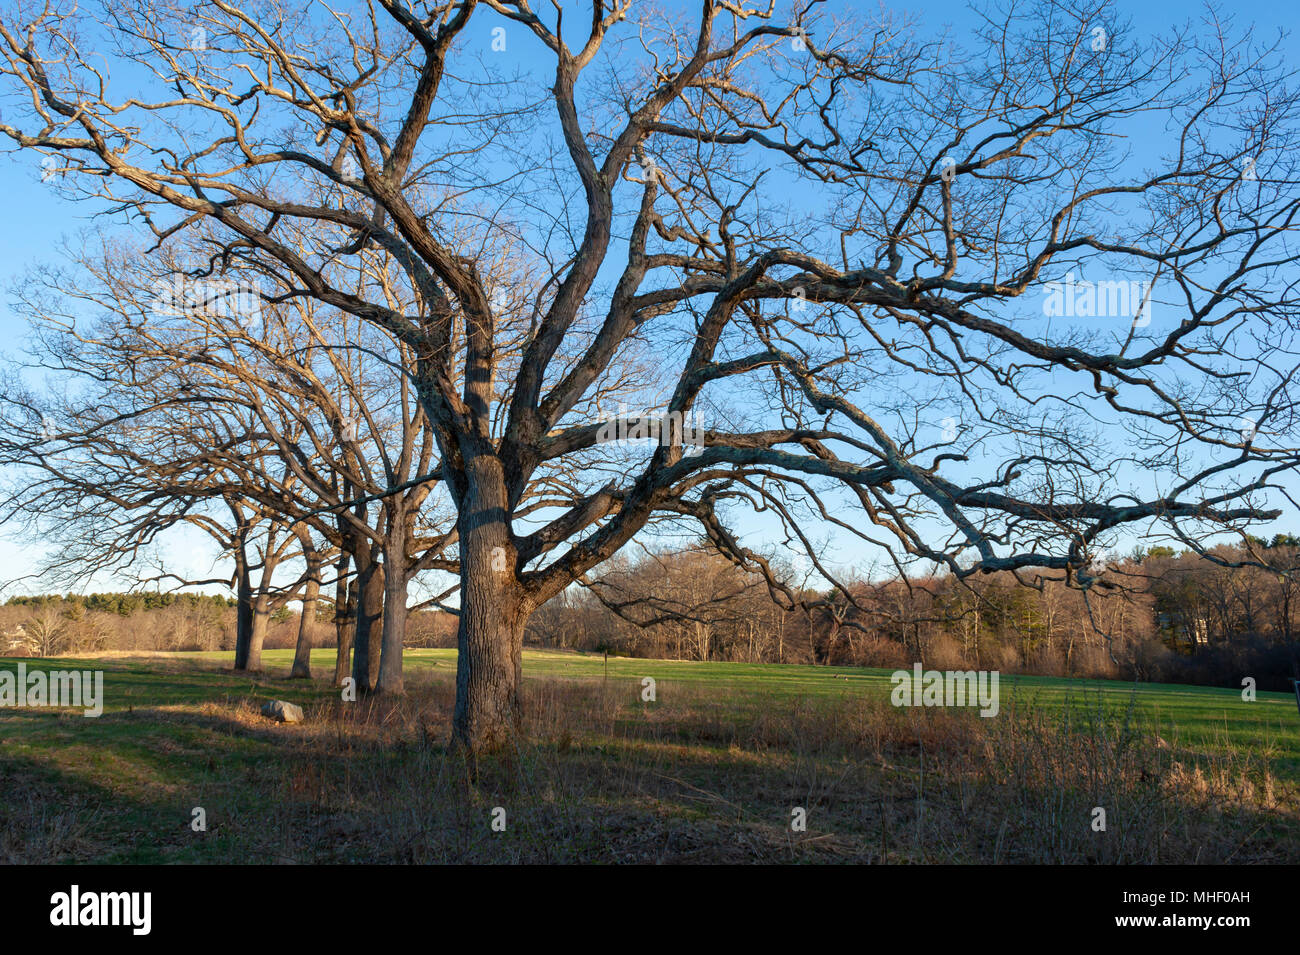 Line of leafless oak trees in a lowland meadow, at sunset. Charles River Peninsula, Dover, MA - Stock Image